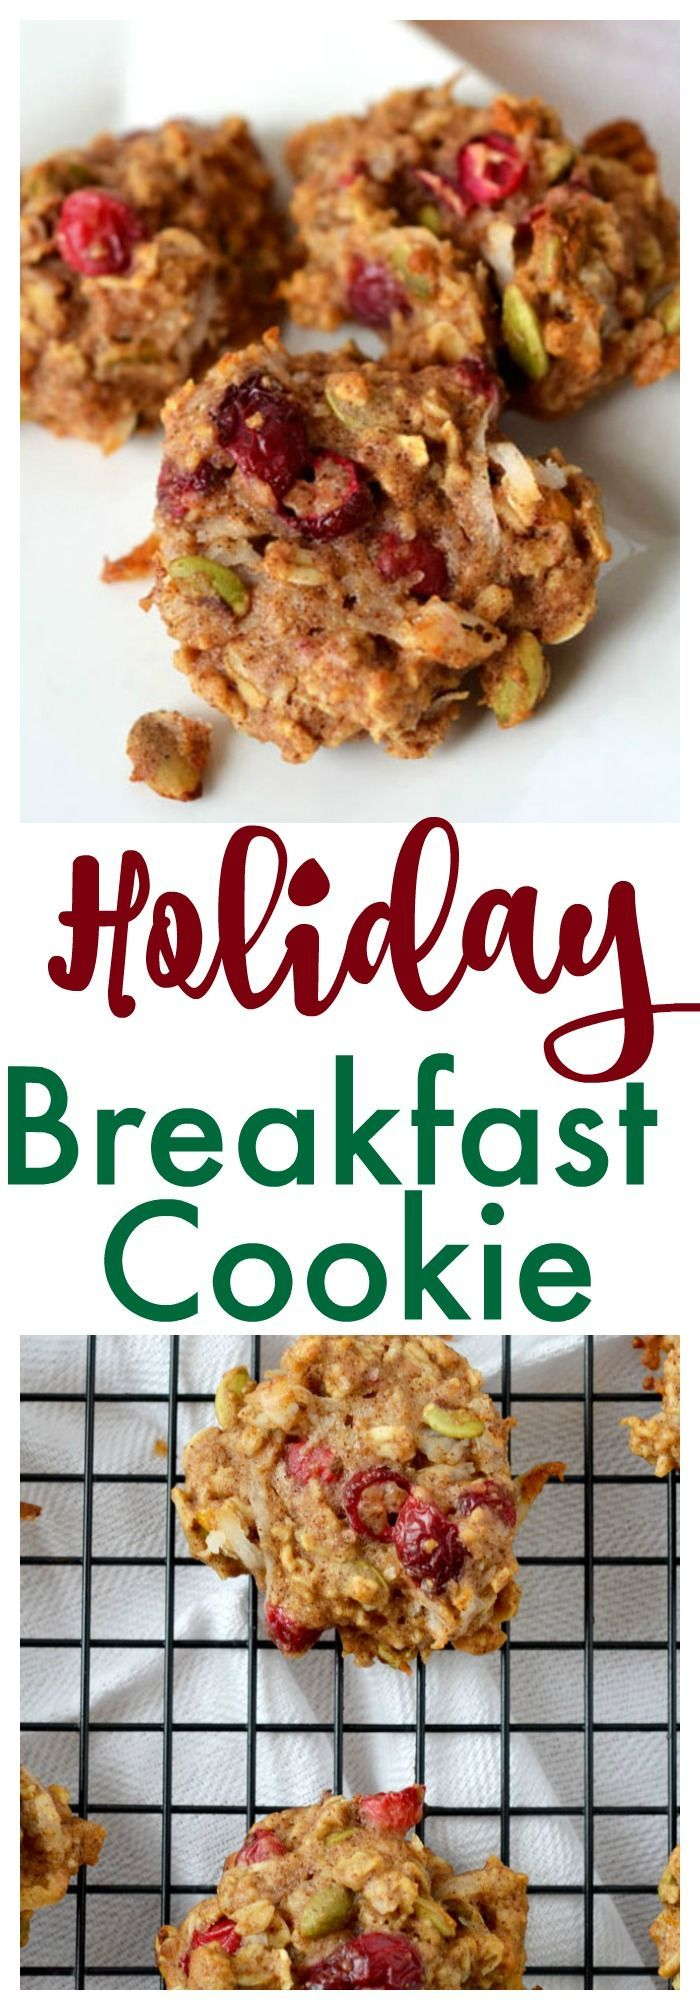 141 best Holiday Recipes images on Pinterest | Christmas baking ...